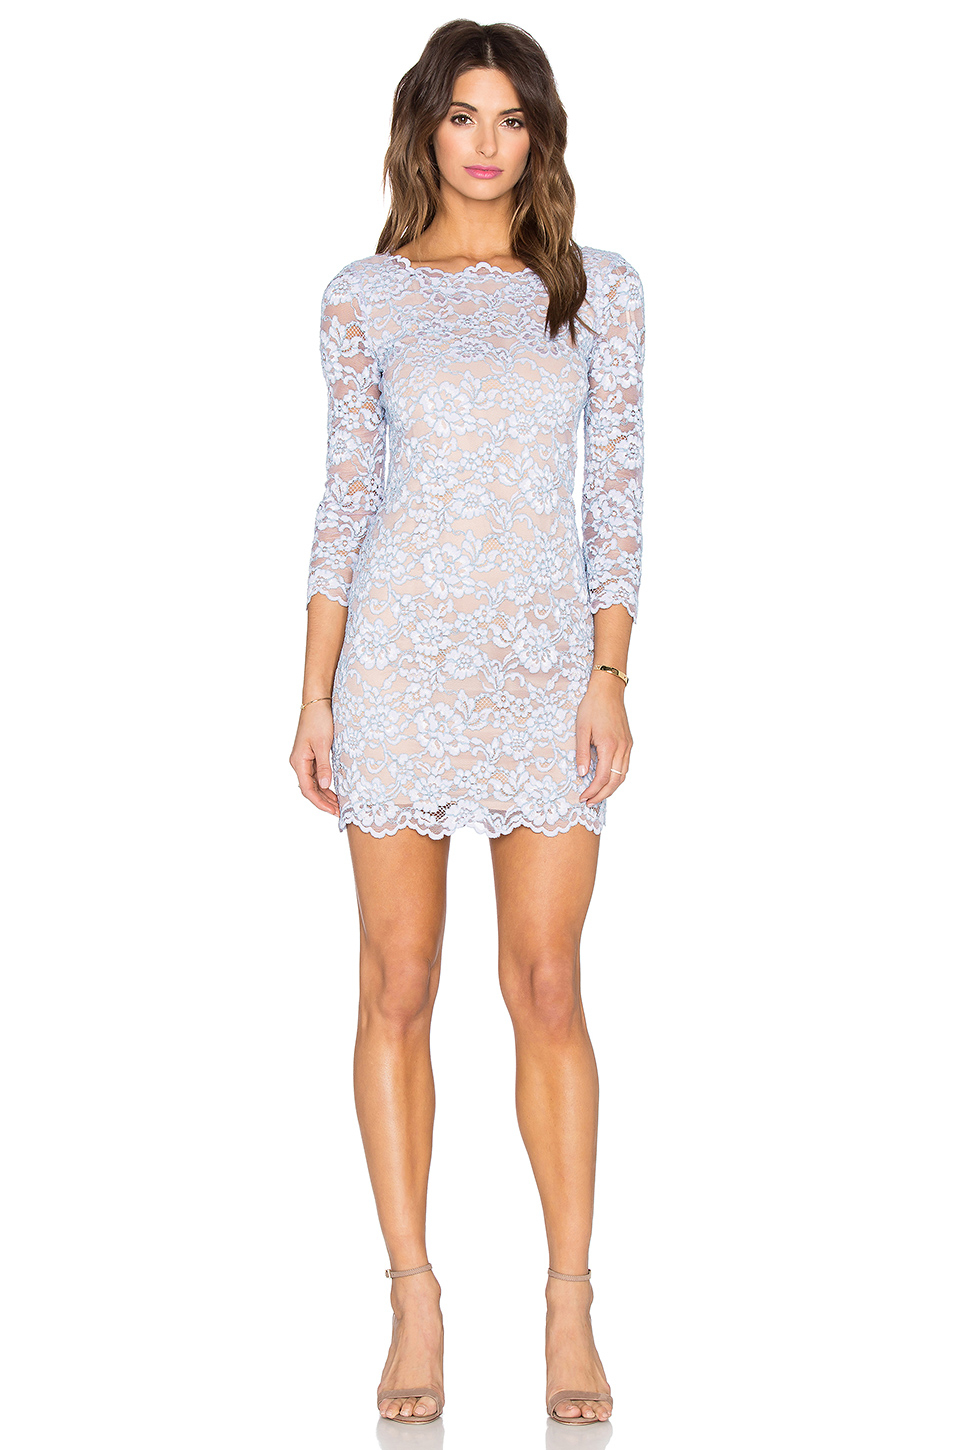 Lyst diane von furstenberg zarita lace dress in purple for Diane von furstenberg clothes